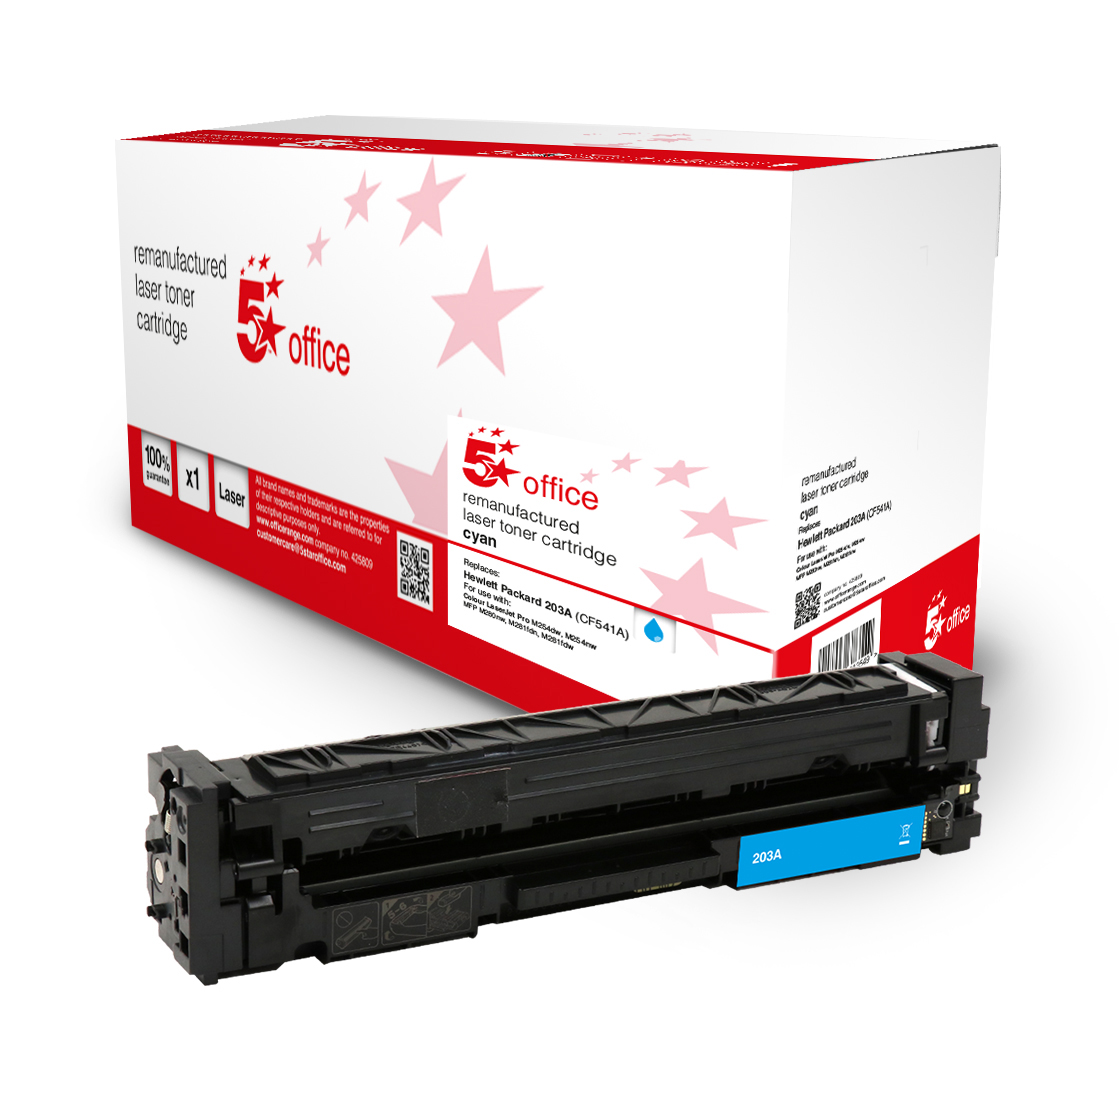 5 Star Office Remanufactured Toner Cartridge Page Life Cyan 1300pp HP 203A CF541A Alternative